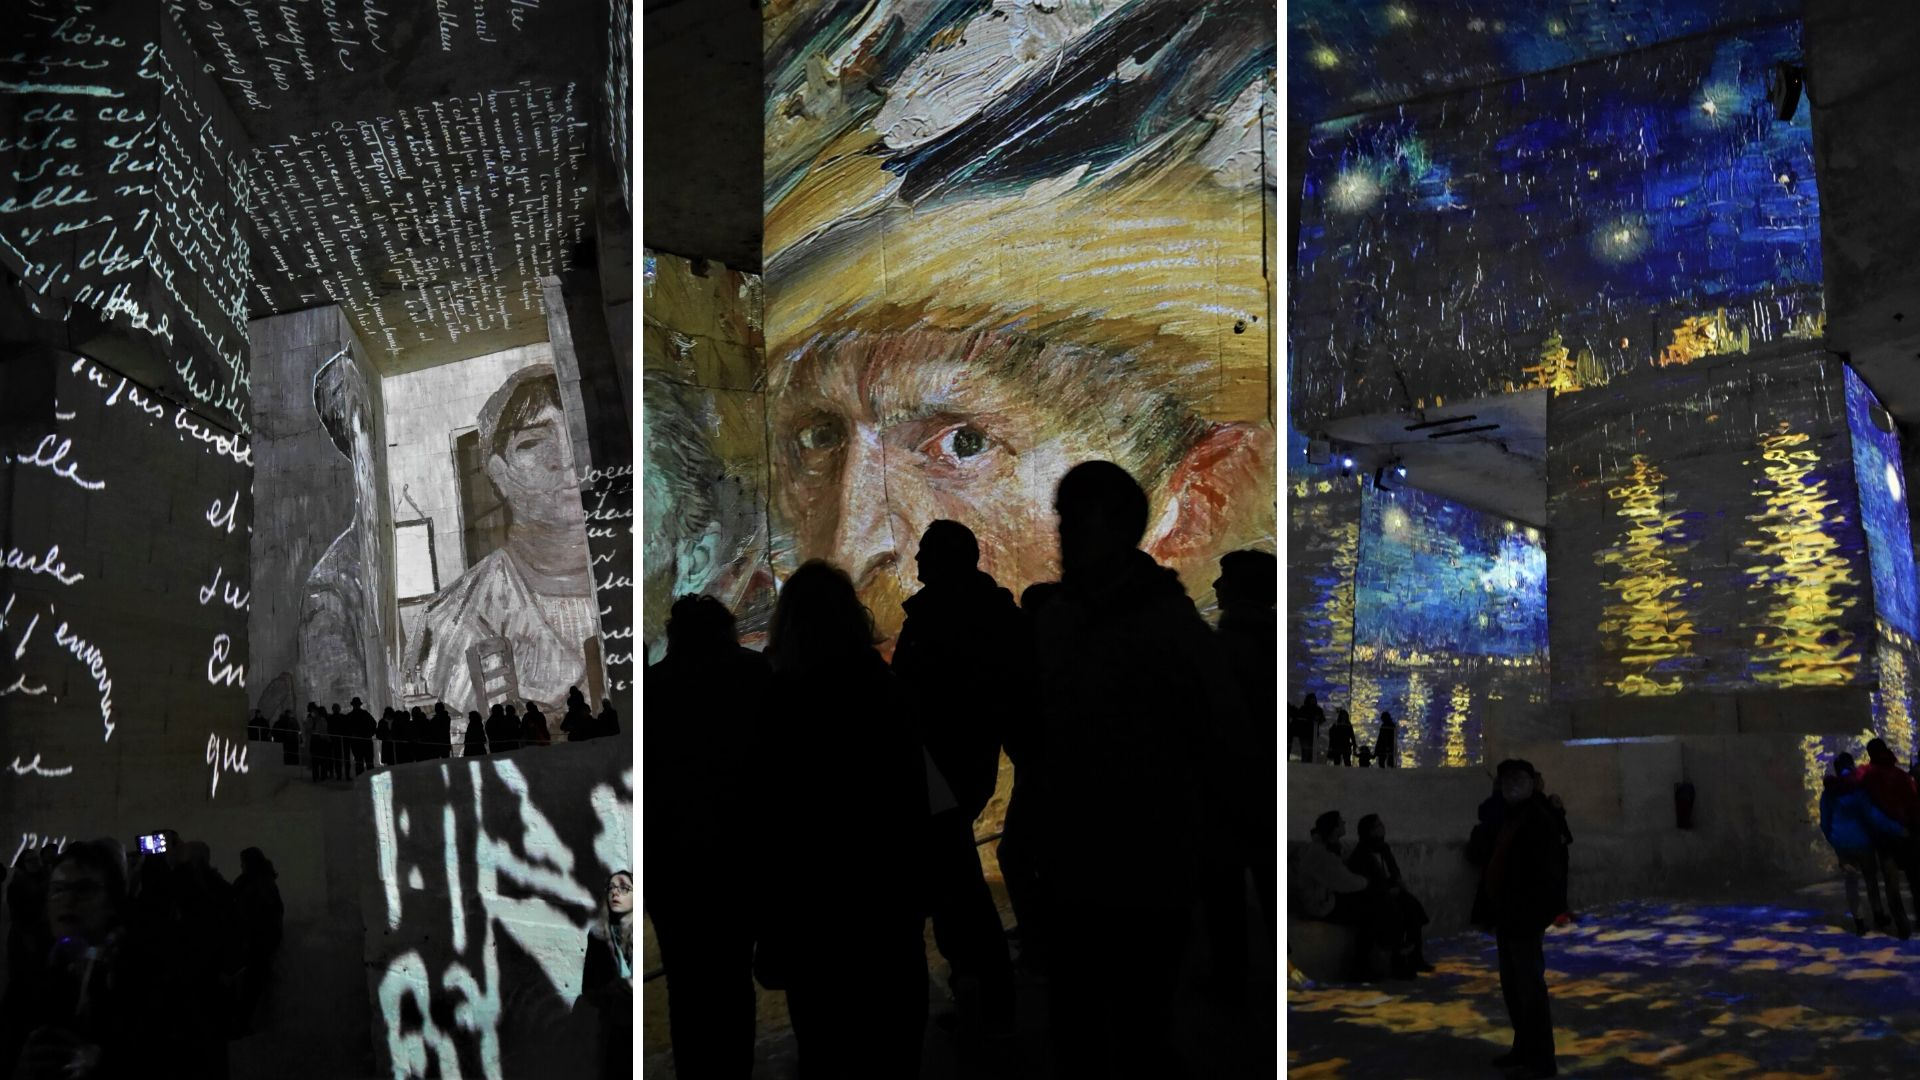 carrieres lumieres van gogh blog voyage france provence arpenter le chemin